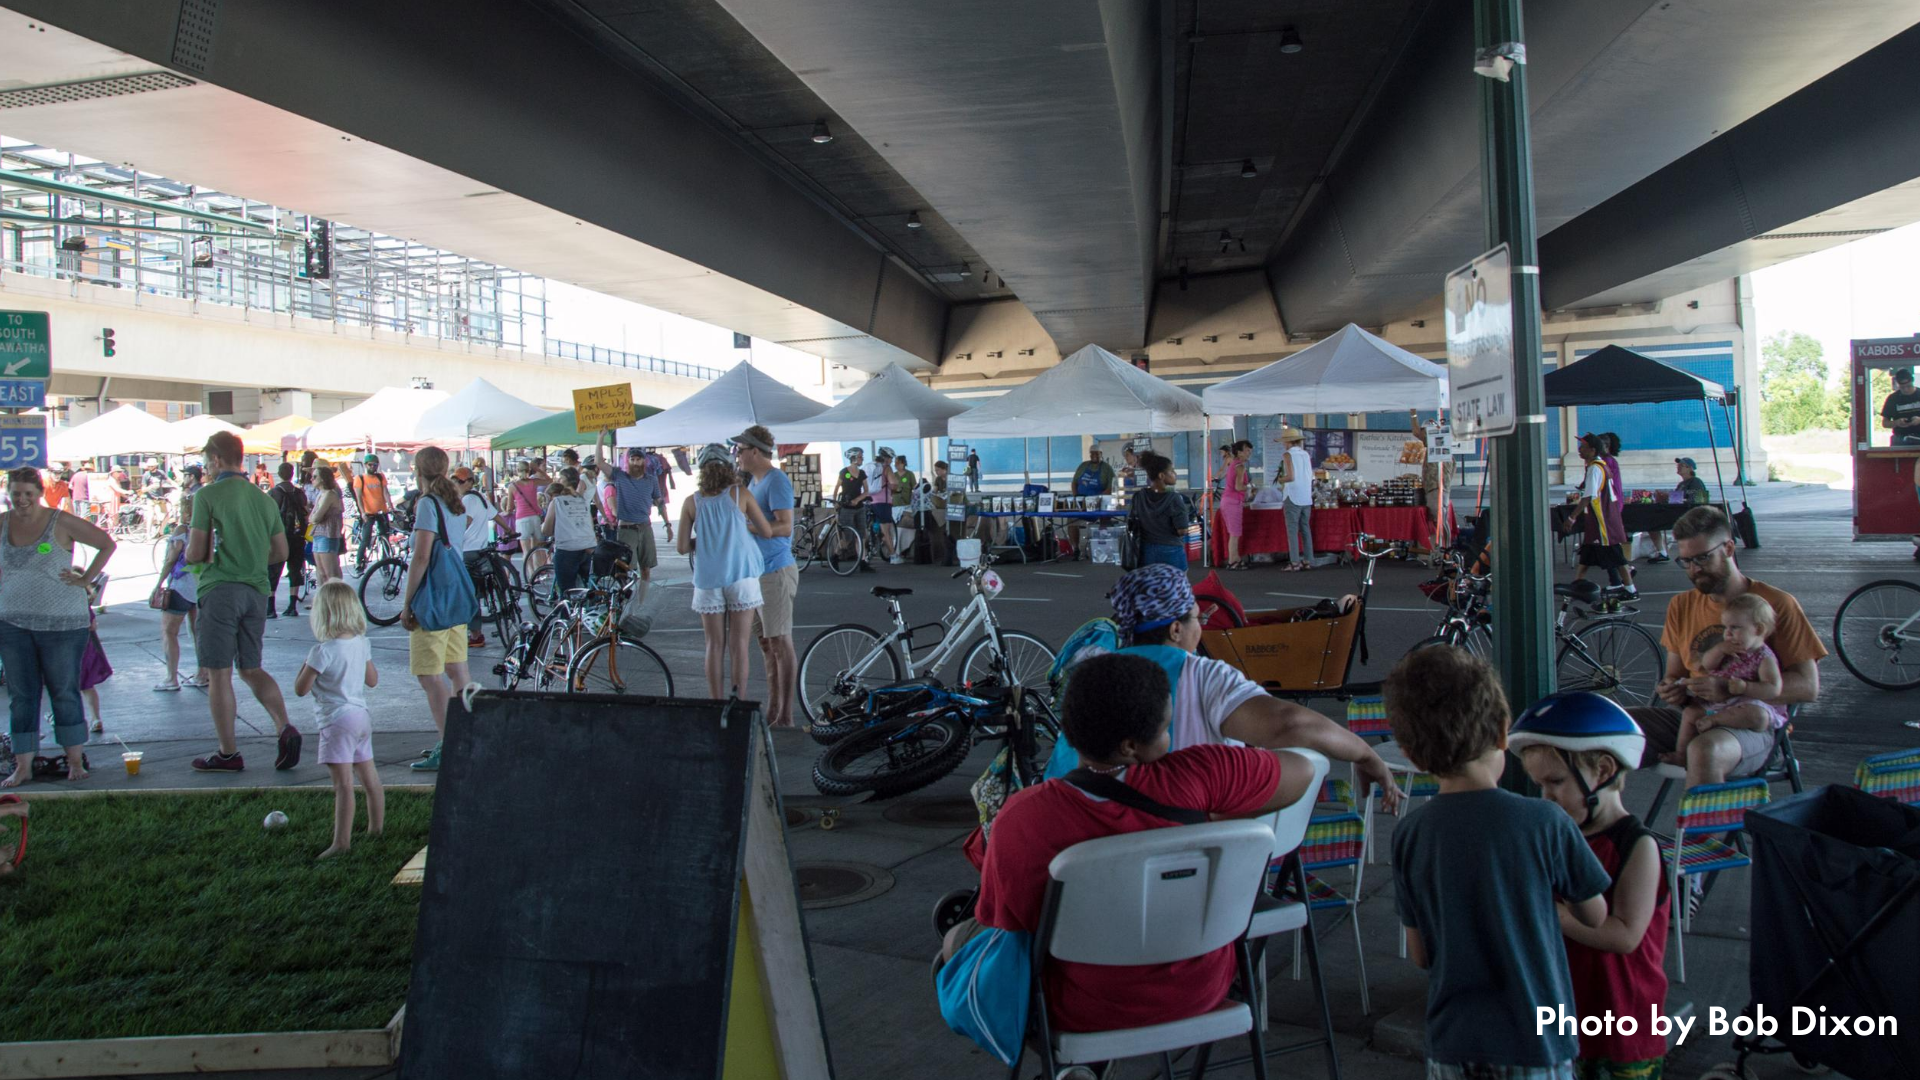 People shopping at a market set up under an overpass at Open Streets East Lake